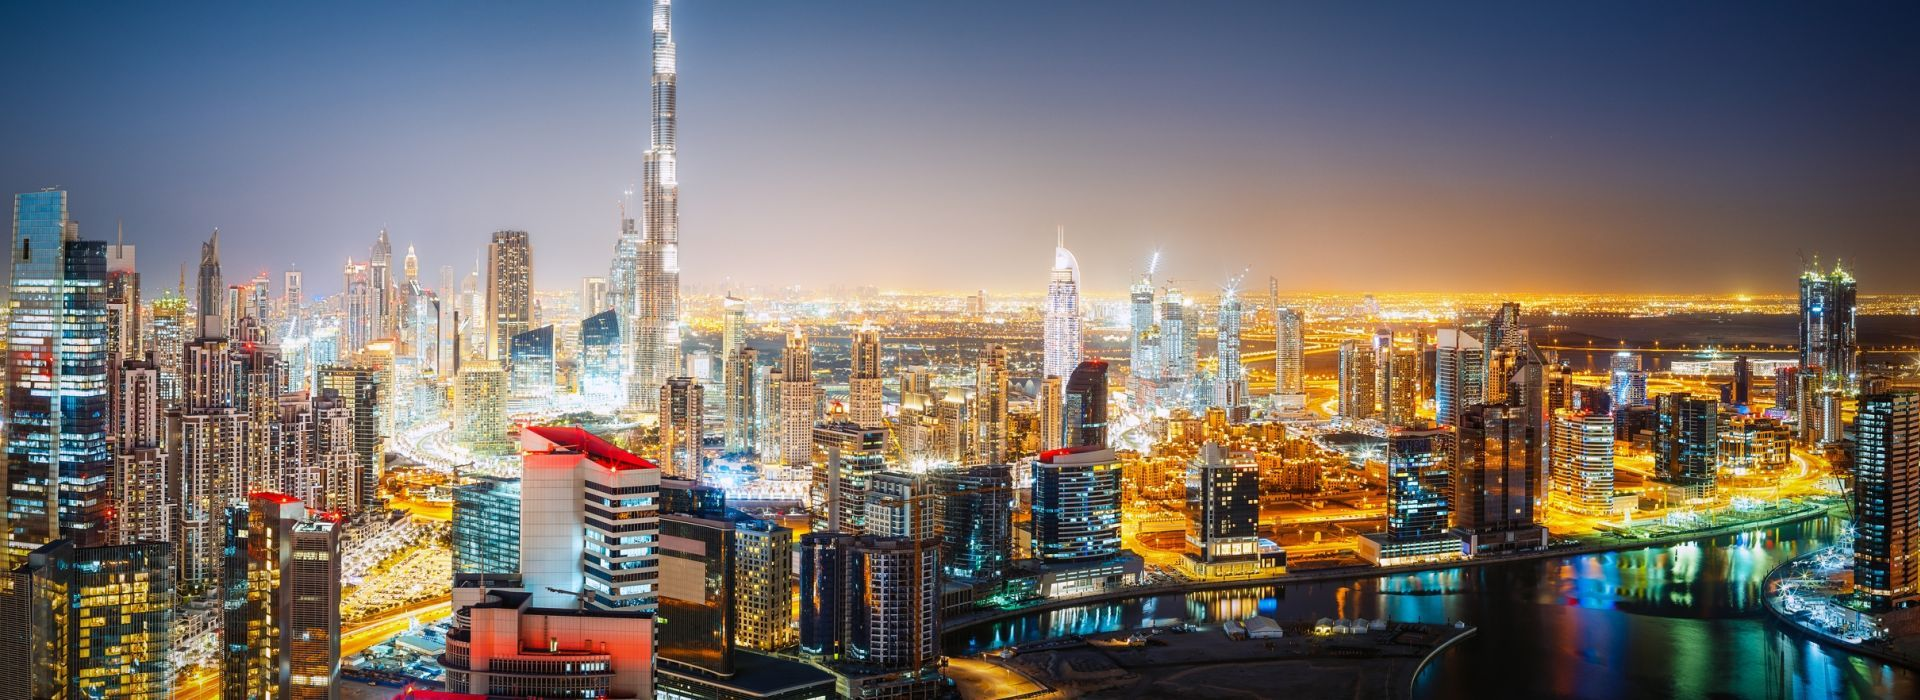 Food, wine, events and nightlife Tours in Dubai